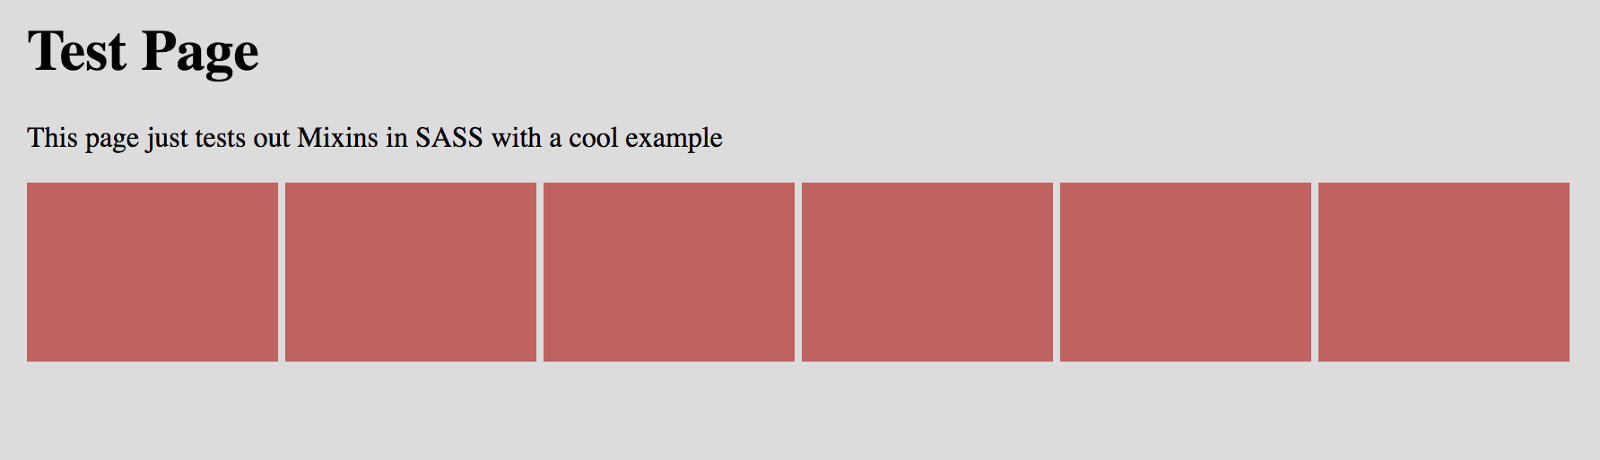 """Text reads, """"Test Page. This page just tests out Mixins in Sass with a cool example."""" Then six maroon boxes are laid out horizontally below the text."""